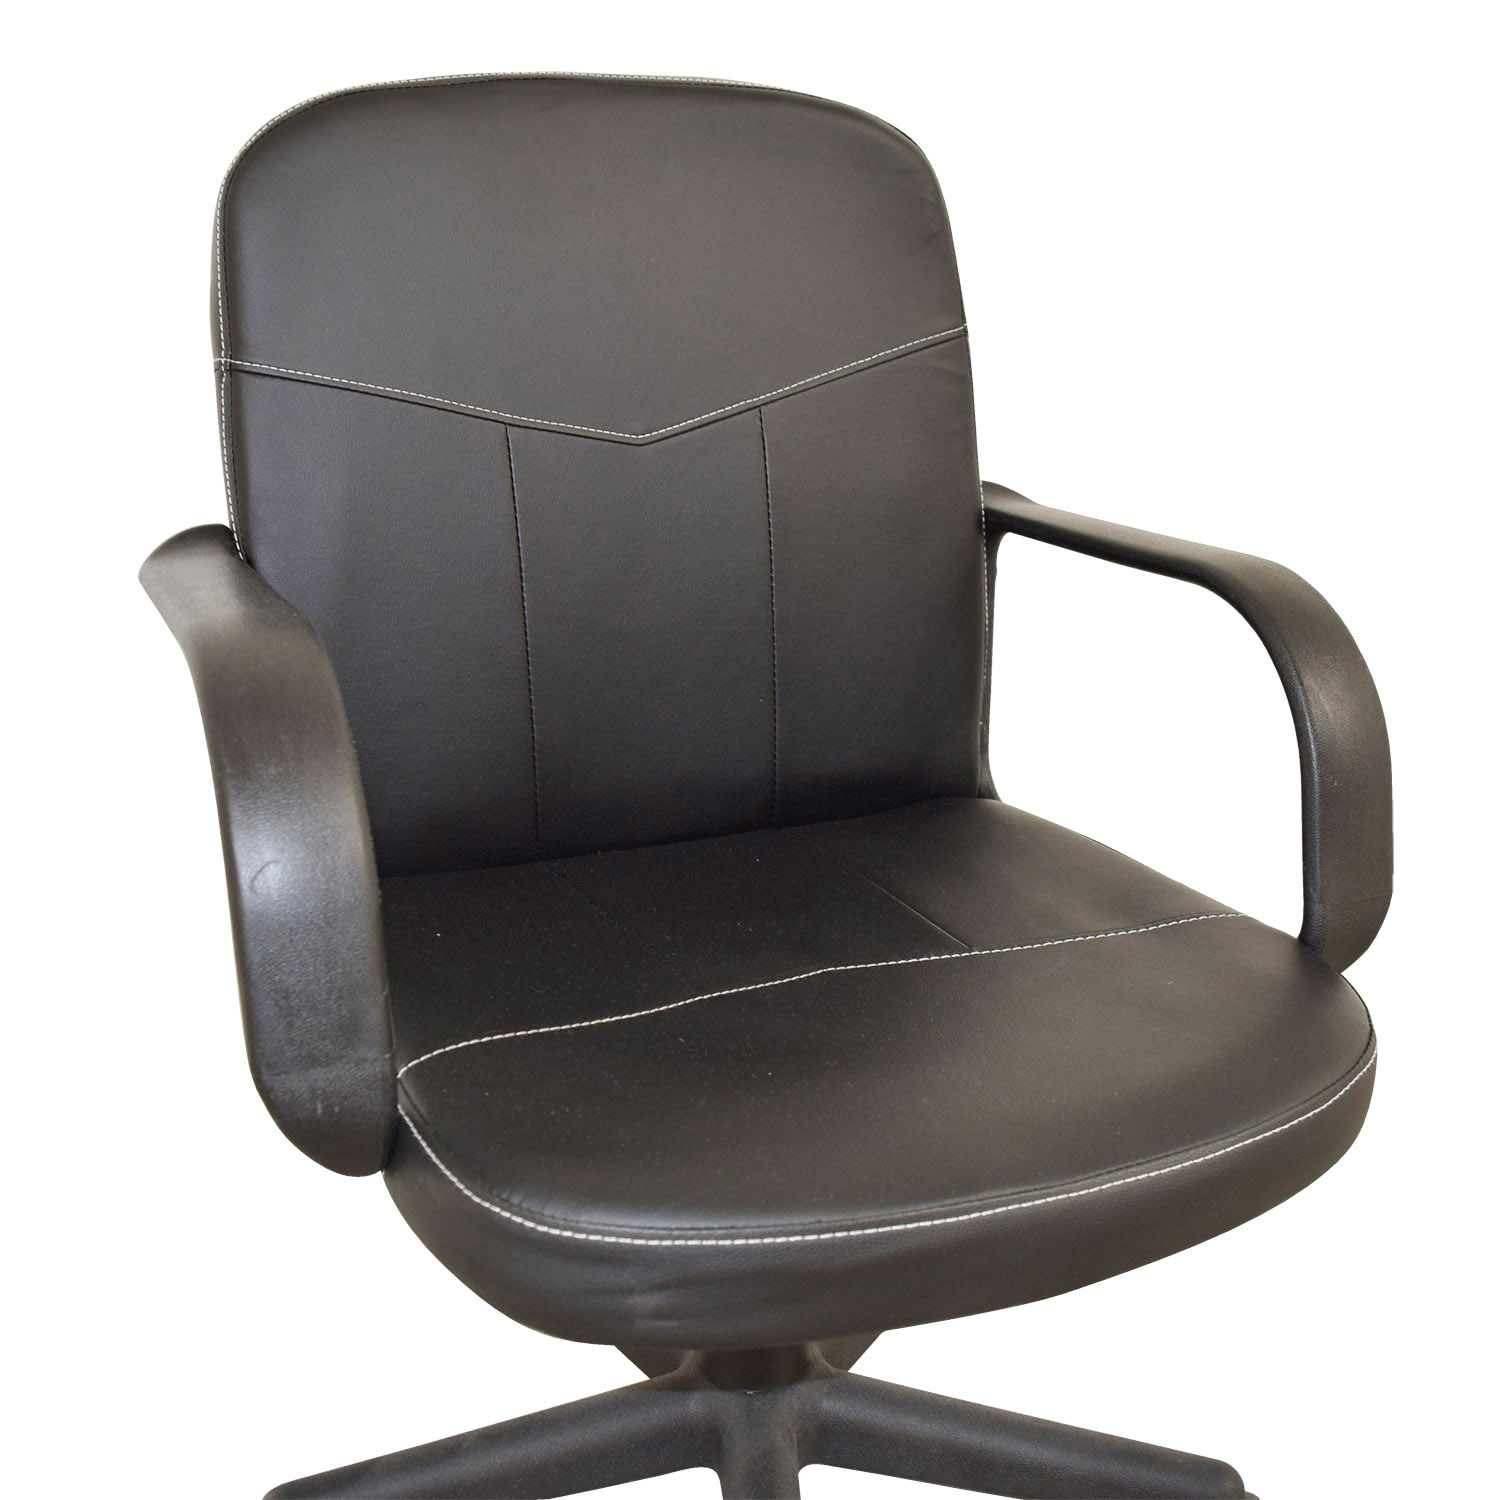 black bonded leather chair resin adirondack chairs 58 off comfort products